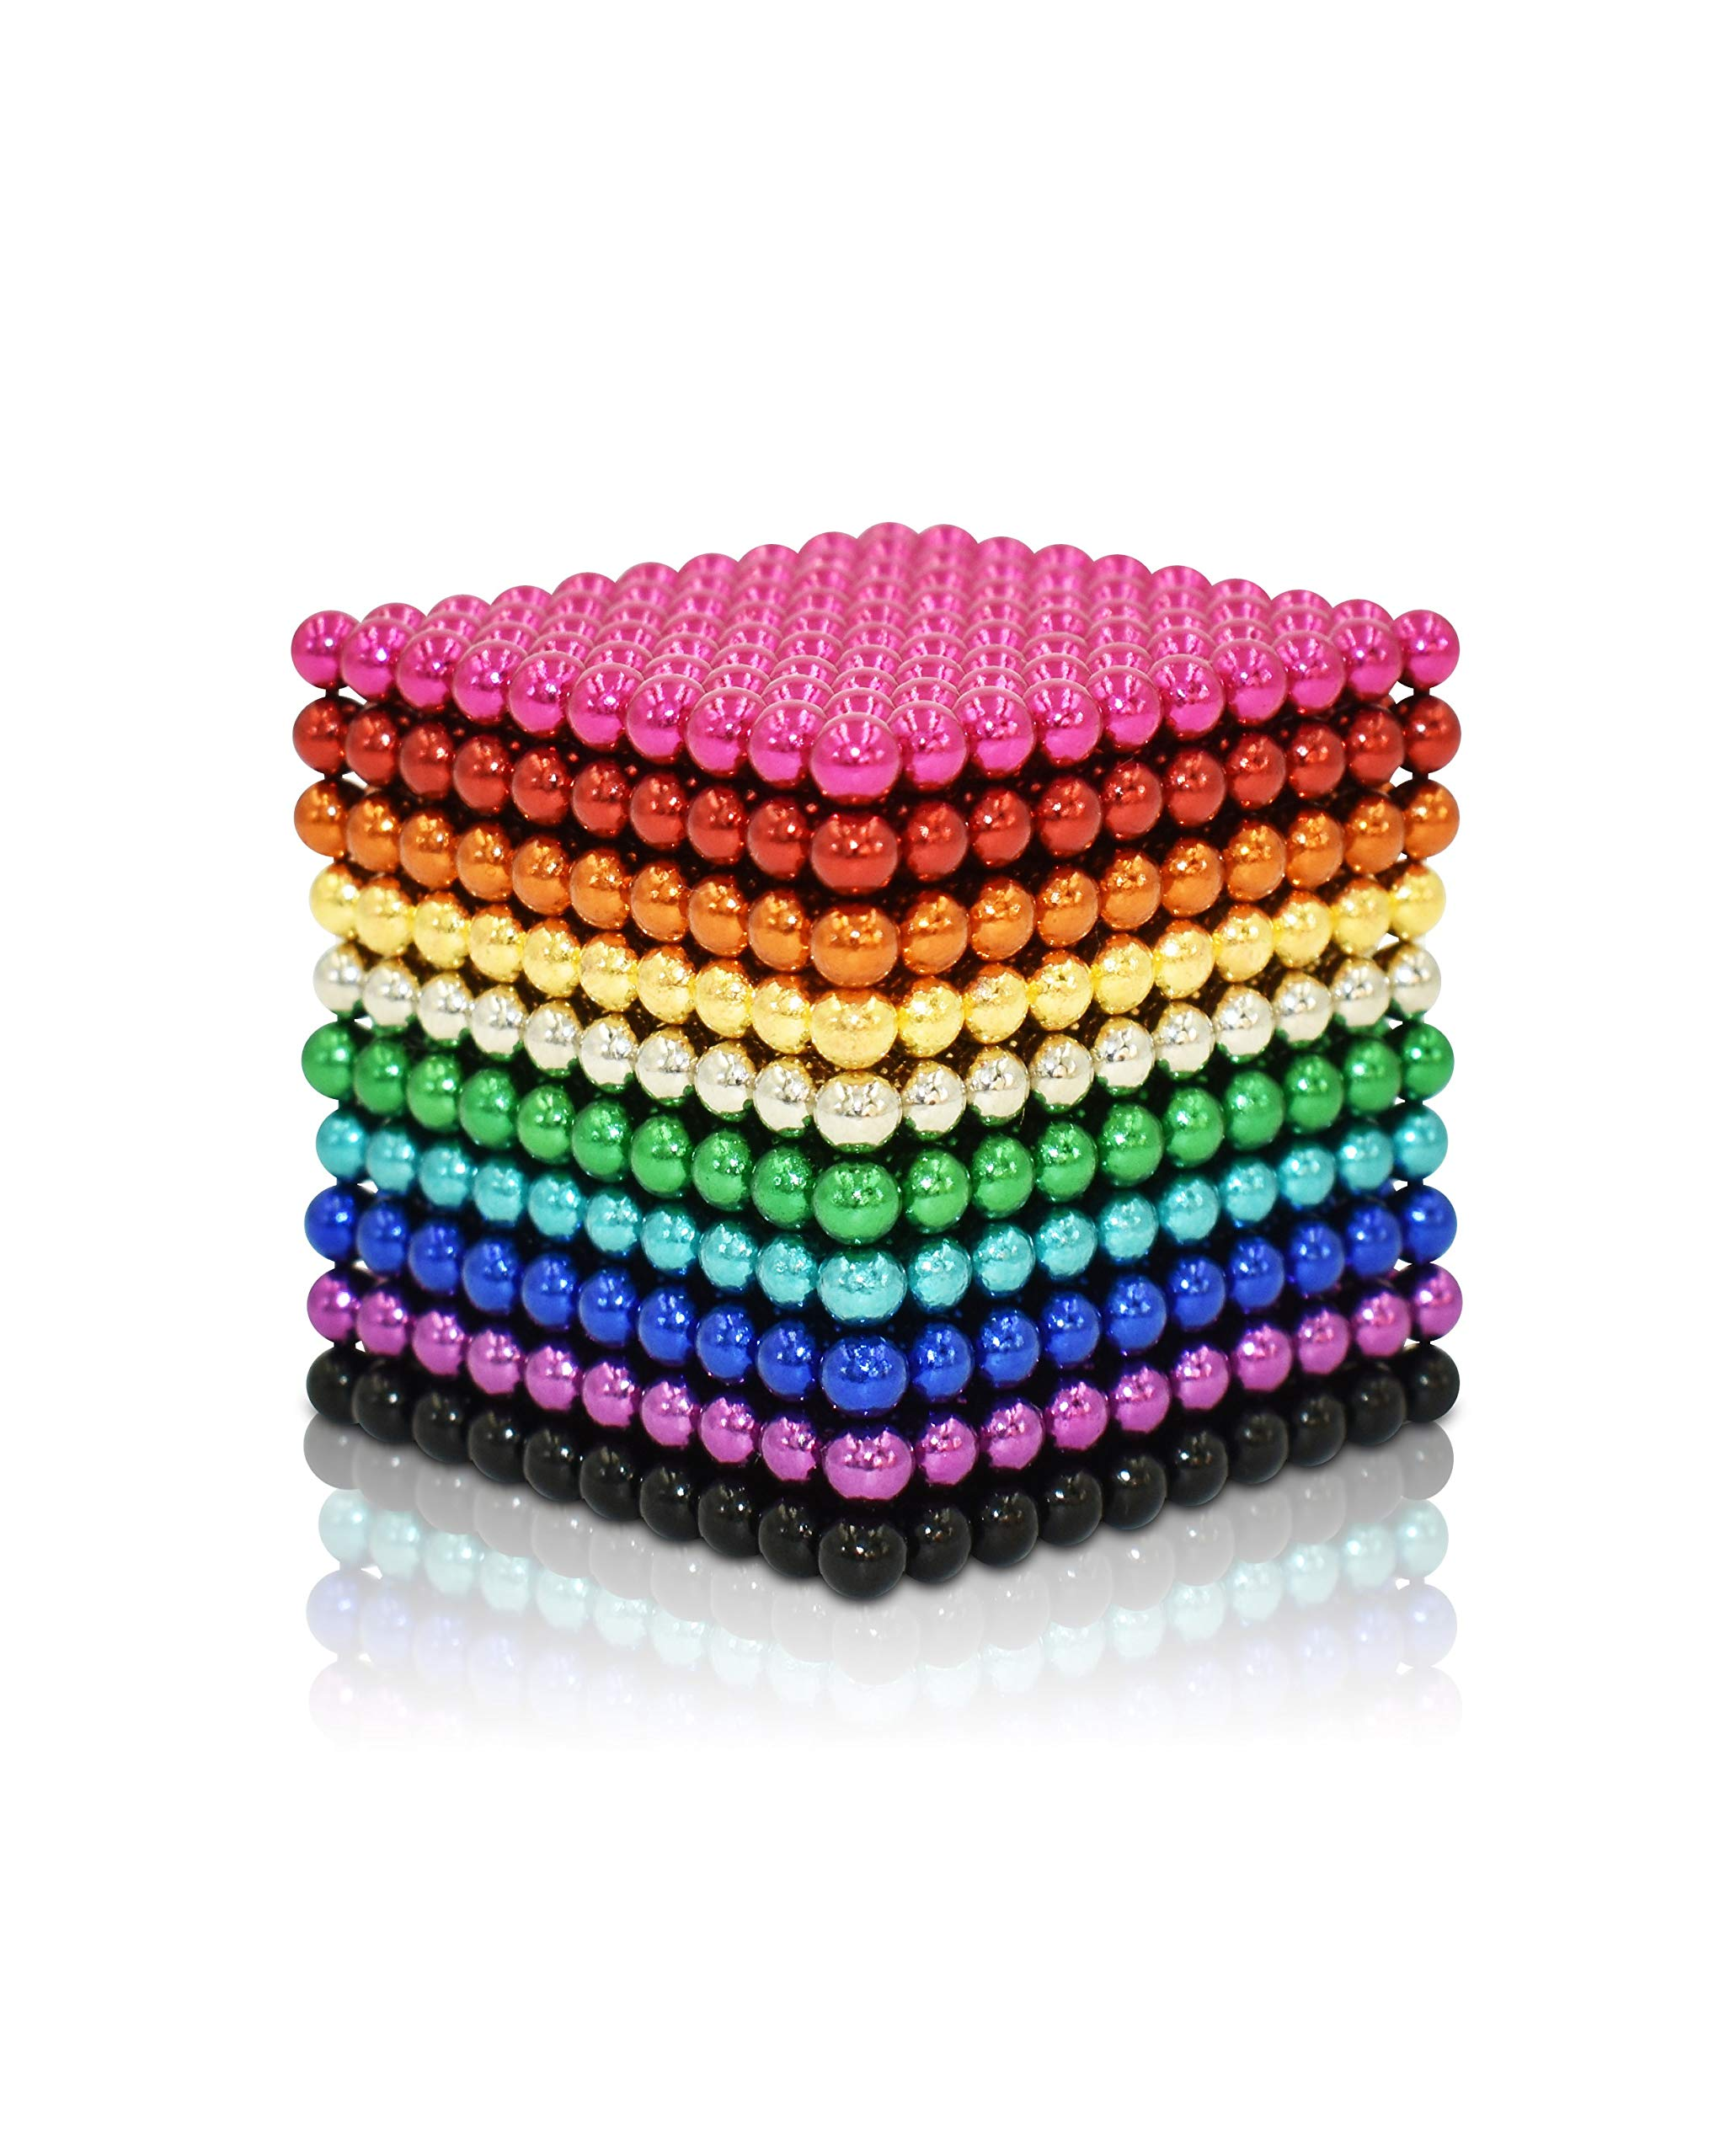 MagneBalls 3mm 1010 PCS Magnetic Ball Set- Magnet Fidget Building Beads Desk Toy Perfect for Education, Intelligence Development Games and Stress Relief (10 Colors) by MagneBalls